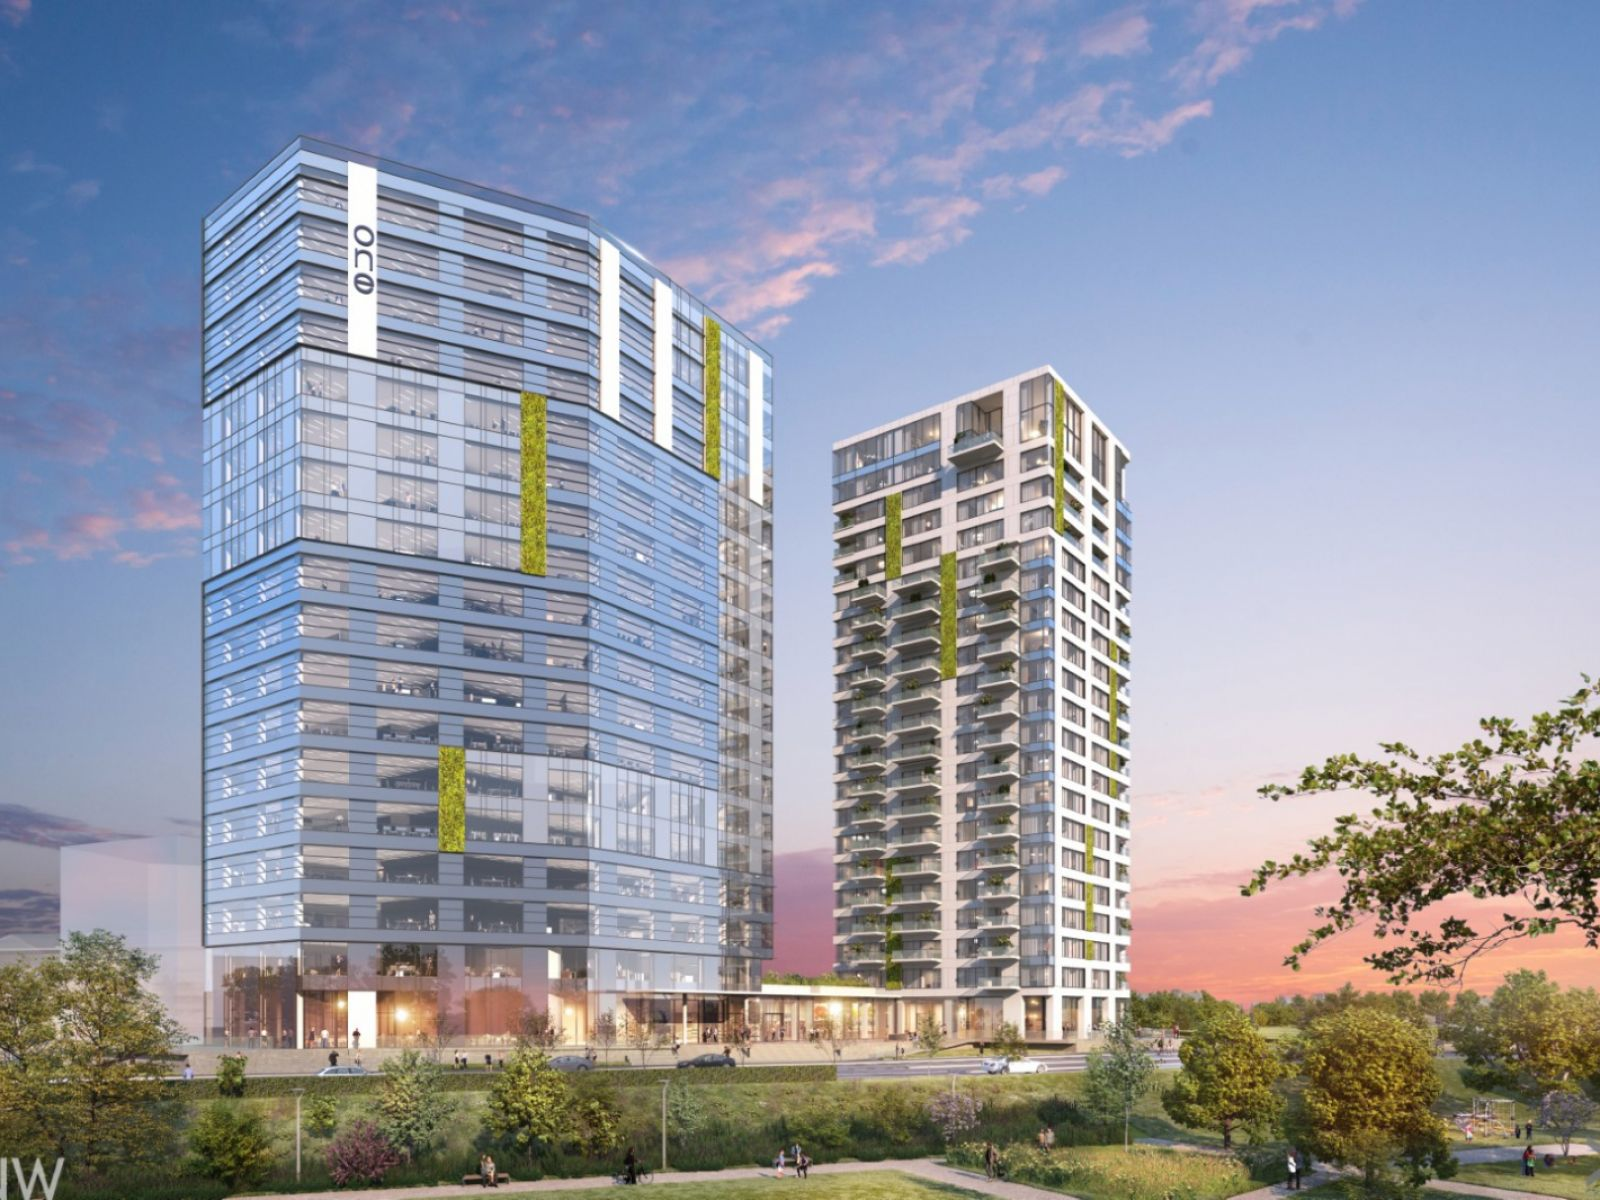 The multifunctional project One Verdi Park developed by One United Properties reaches ground zero and will be completed in 2021